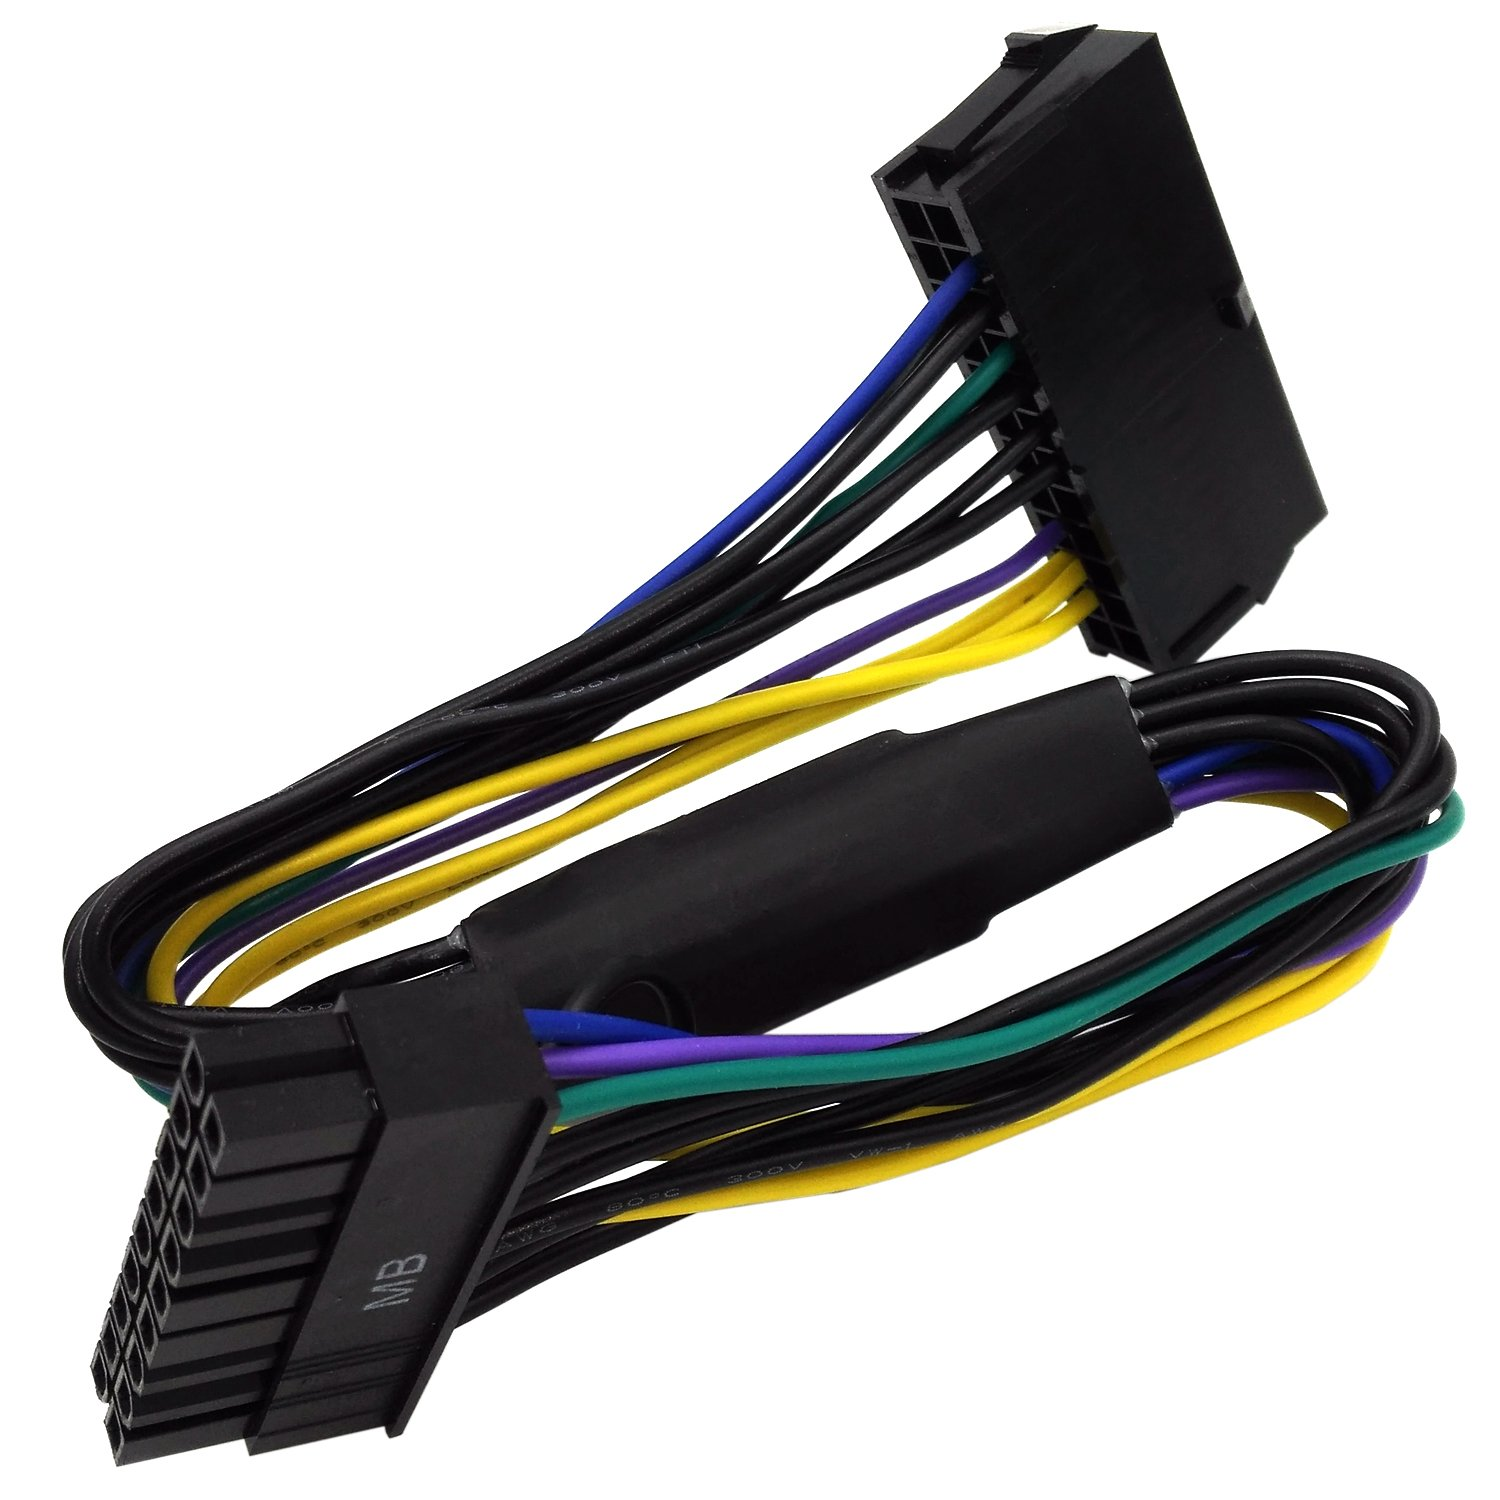 COMeap 24 Pin to 18 Pin ATX PSU Power Adapter Cable for HP Z230/Z420/Z620  Workstation 12-inch(30cm)